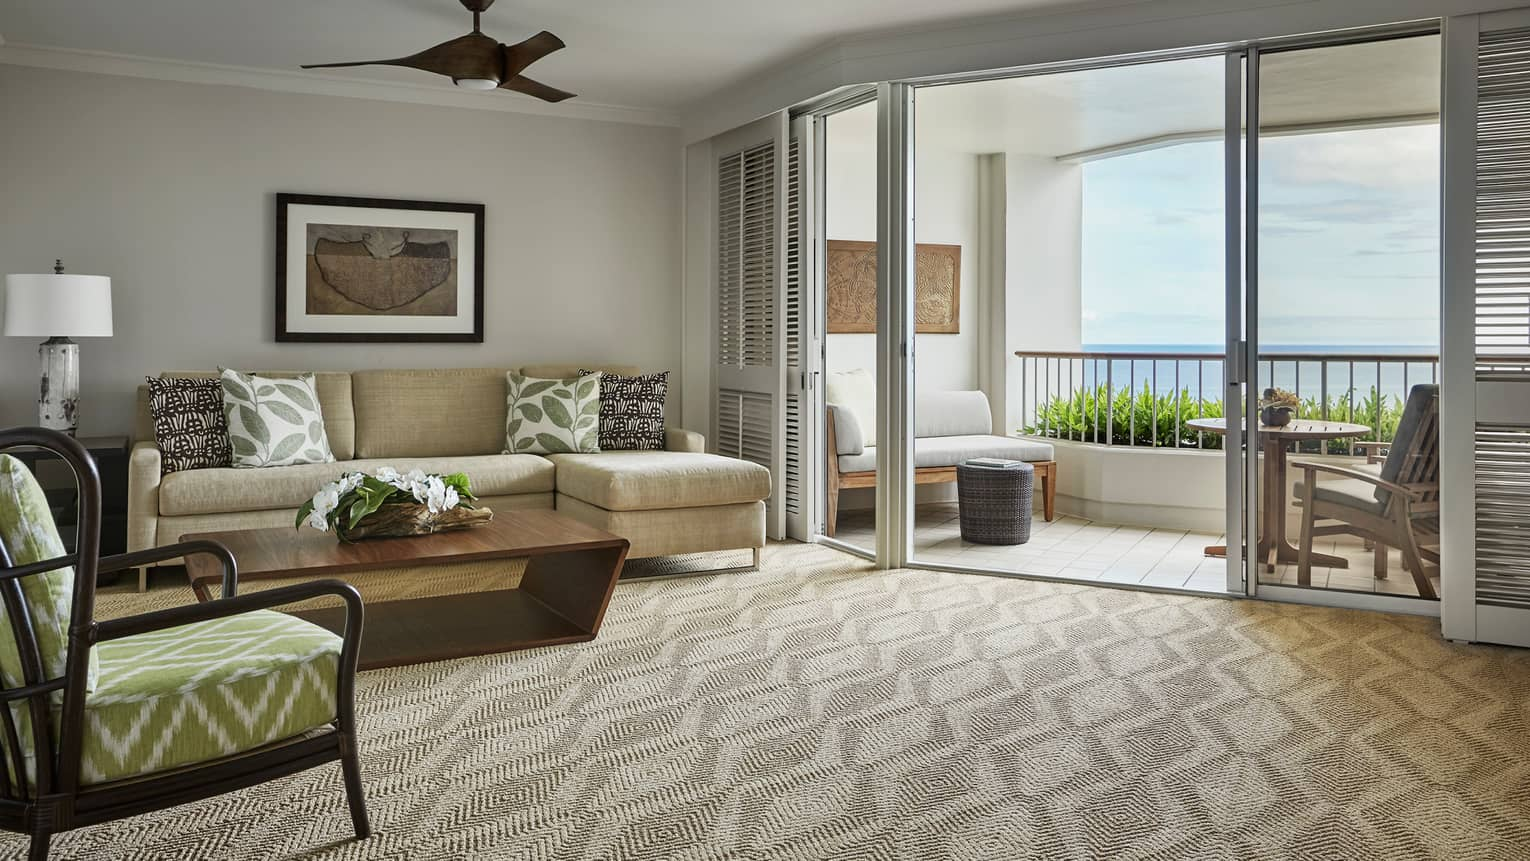 Oceanfront Suite living room with L-shaped sofa, chair on carpet, shutters on patio door